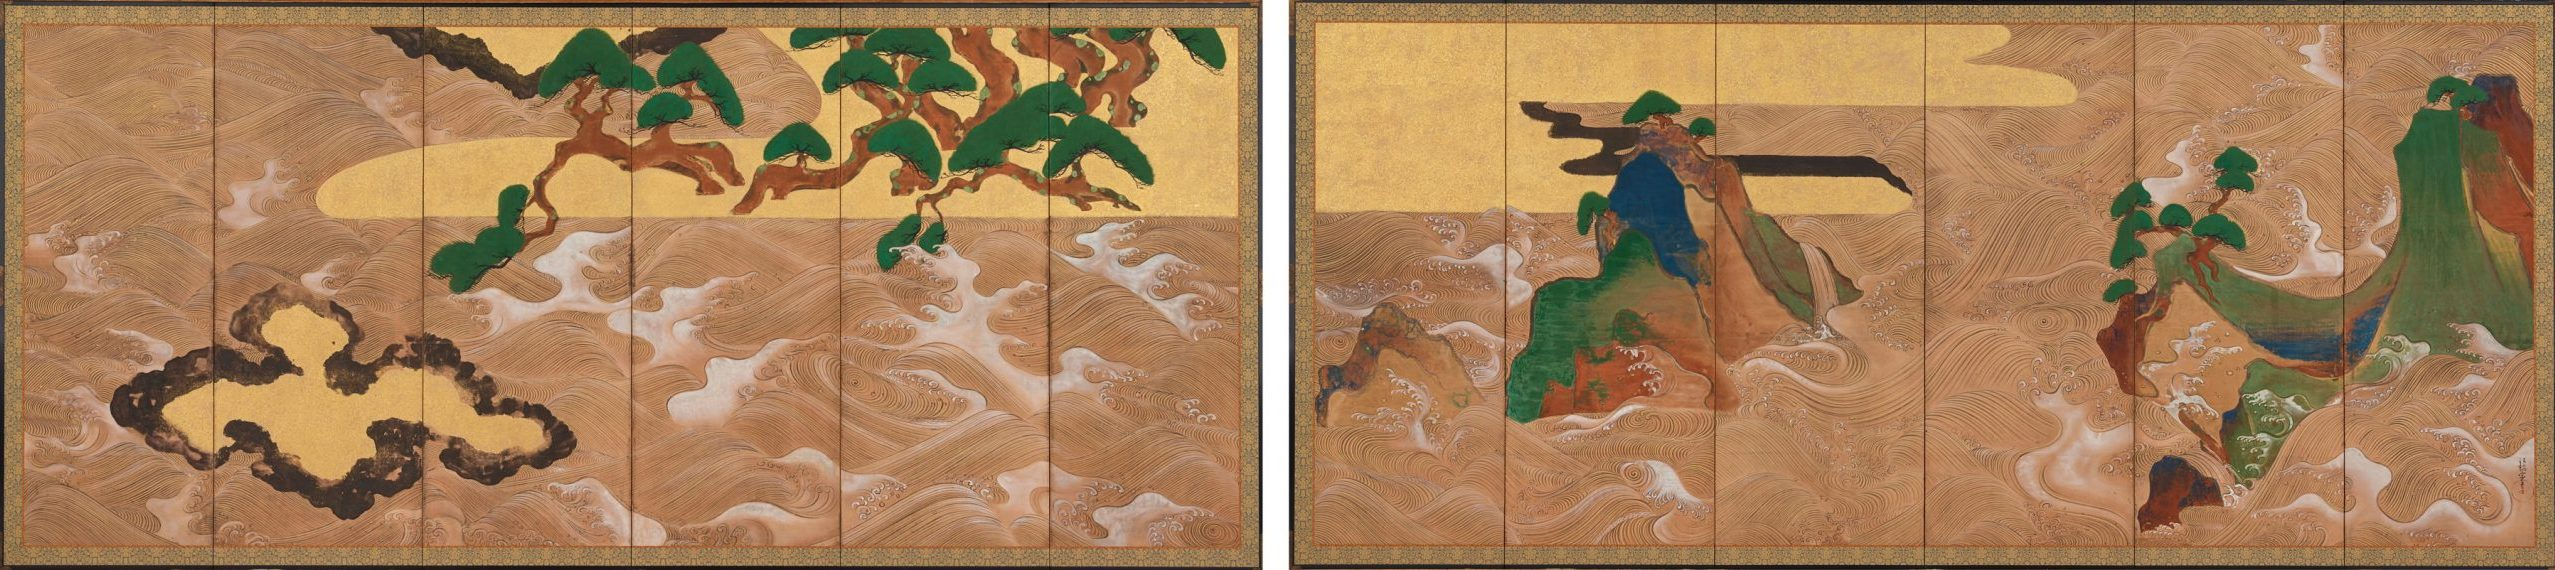 a pair of japanese screens, depicting waves, mountains, and trees